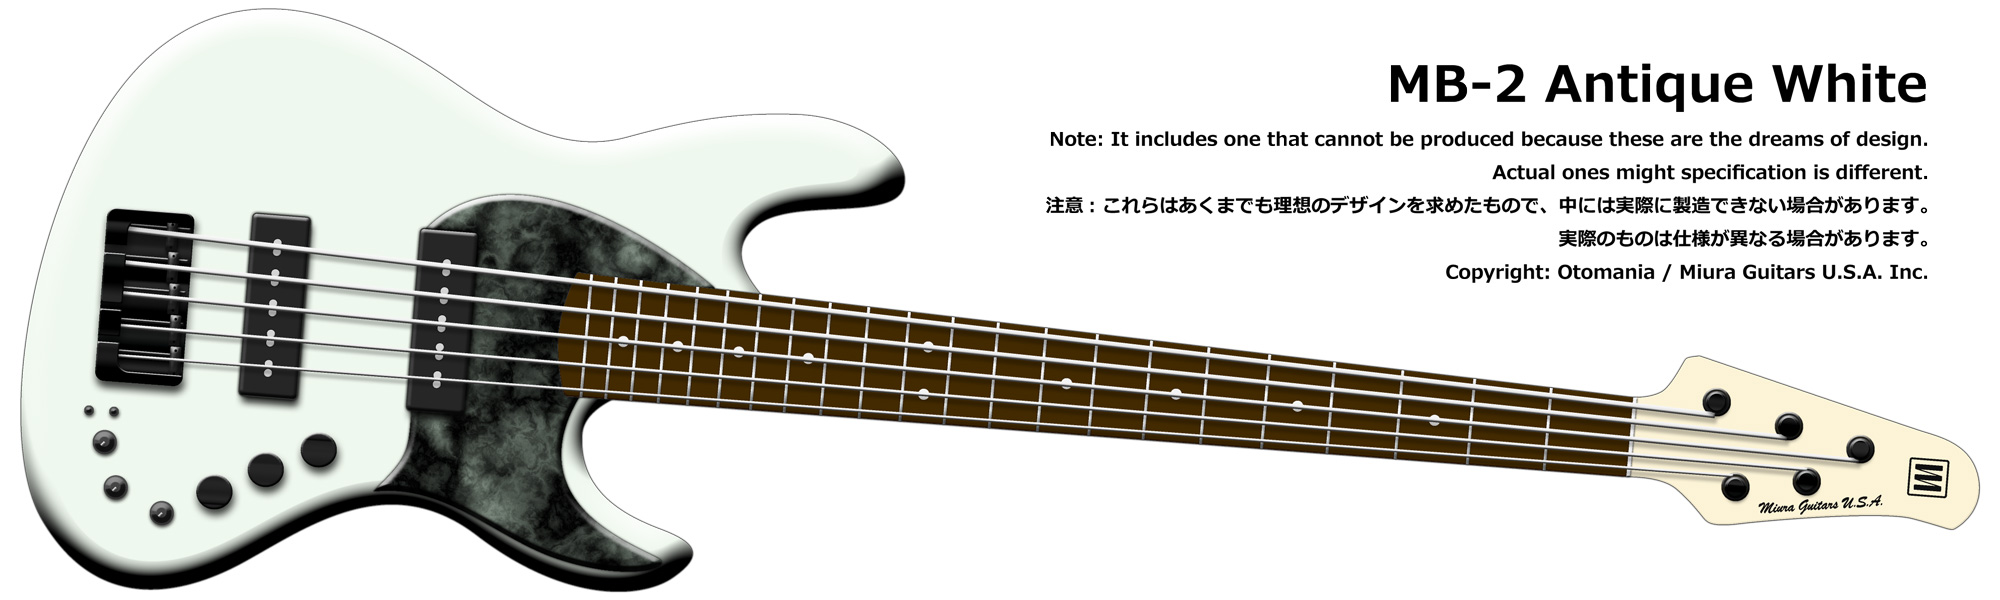 MB-2 Antique White